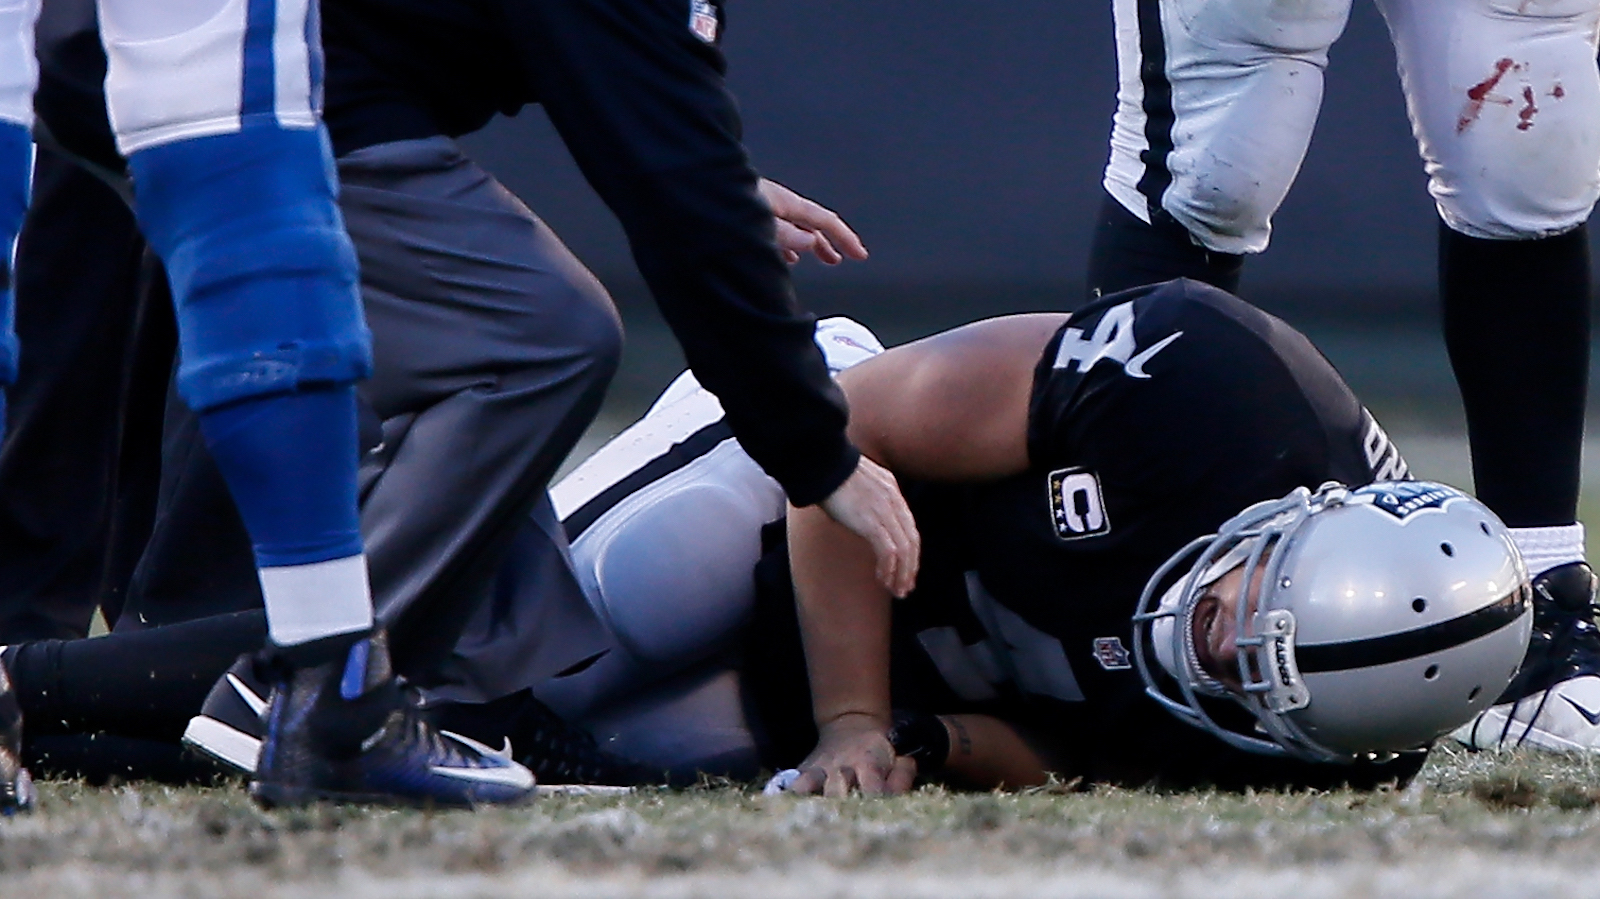 OAKLAND, CA - DECEMBER 24:  Derek Carr #4 of the Oakland Raiders lays on the field after injuring his right leg during their NFL game against the Indianapolis Colts at Oakland Alameda Coliseum on December 24, 2016 in Oakland, California.  (Photo by Brian Bahr/Getty Images)